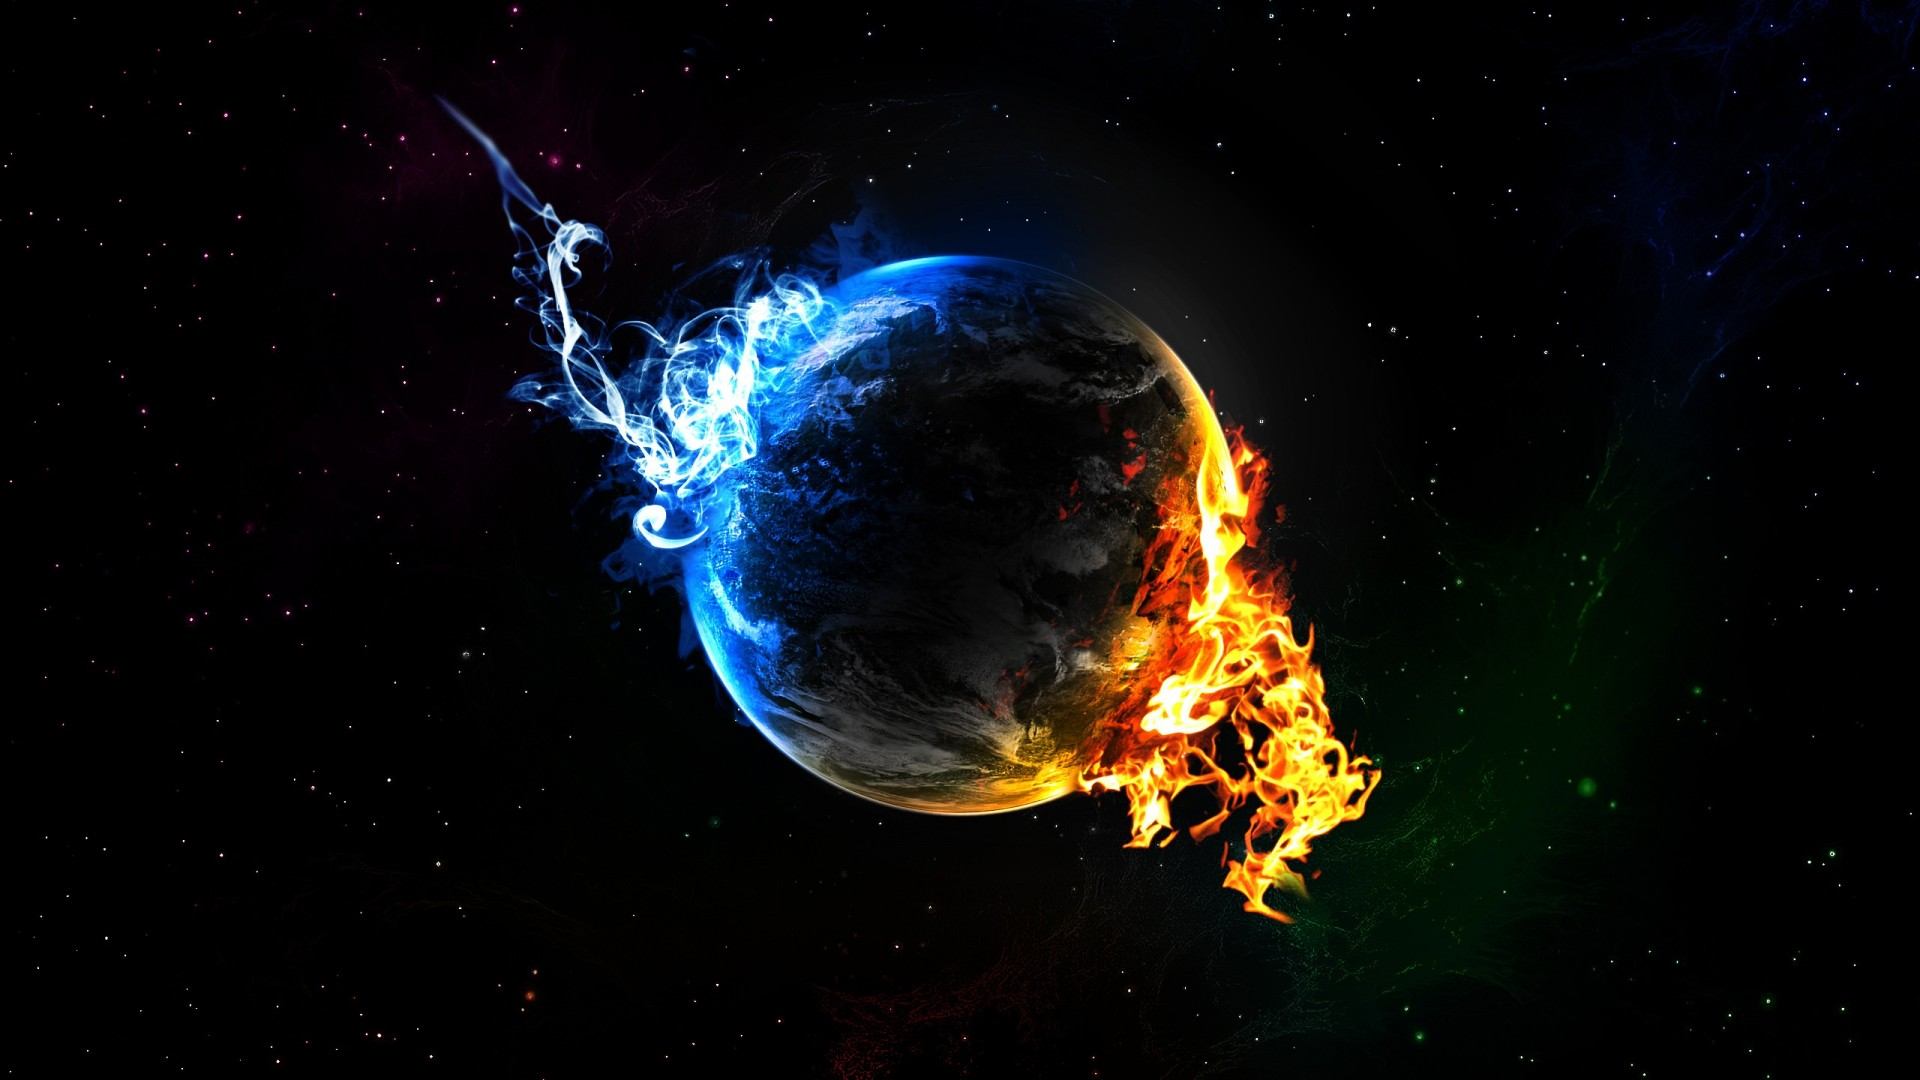 cool hd ice flame desktop wallpaper 1920x1080 1920x1080